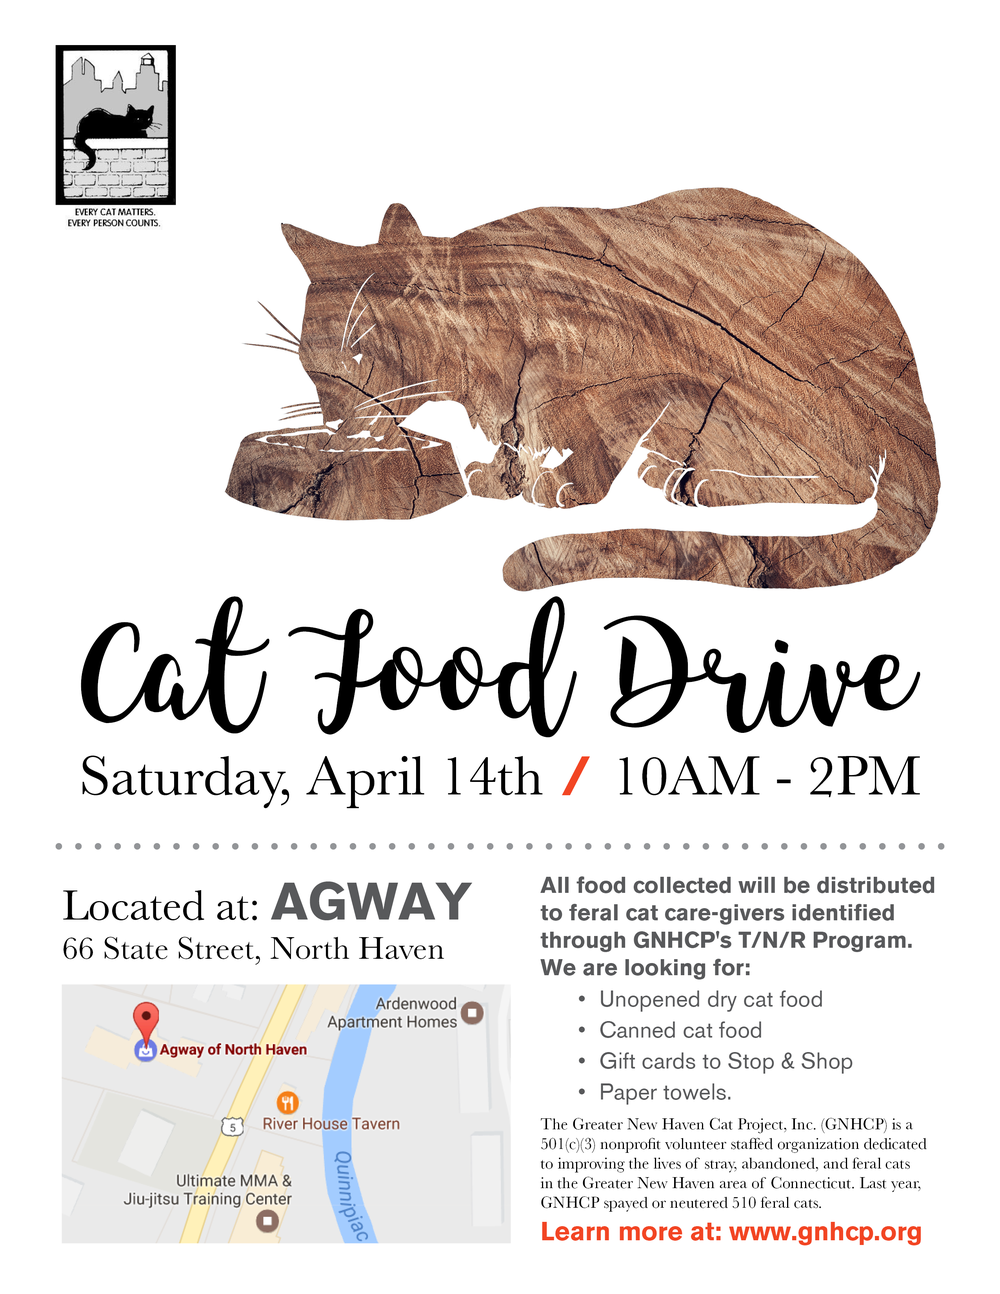 Catfooddrive_Agway_20182.png